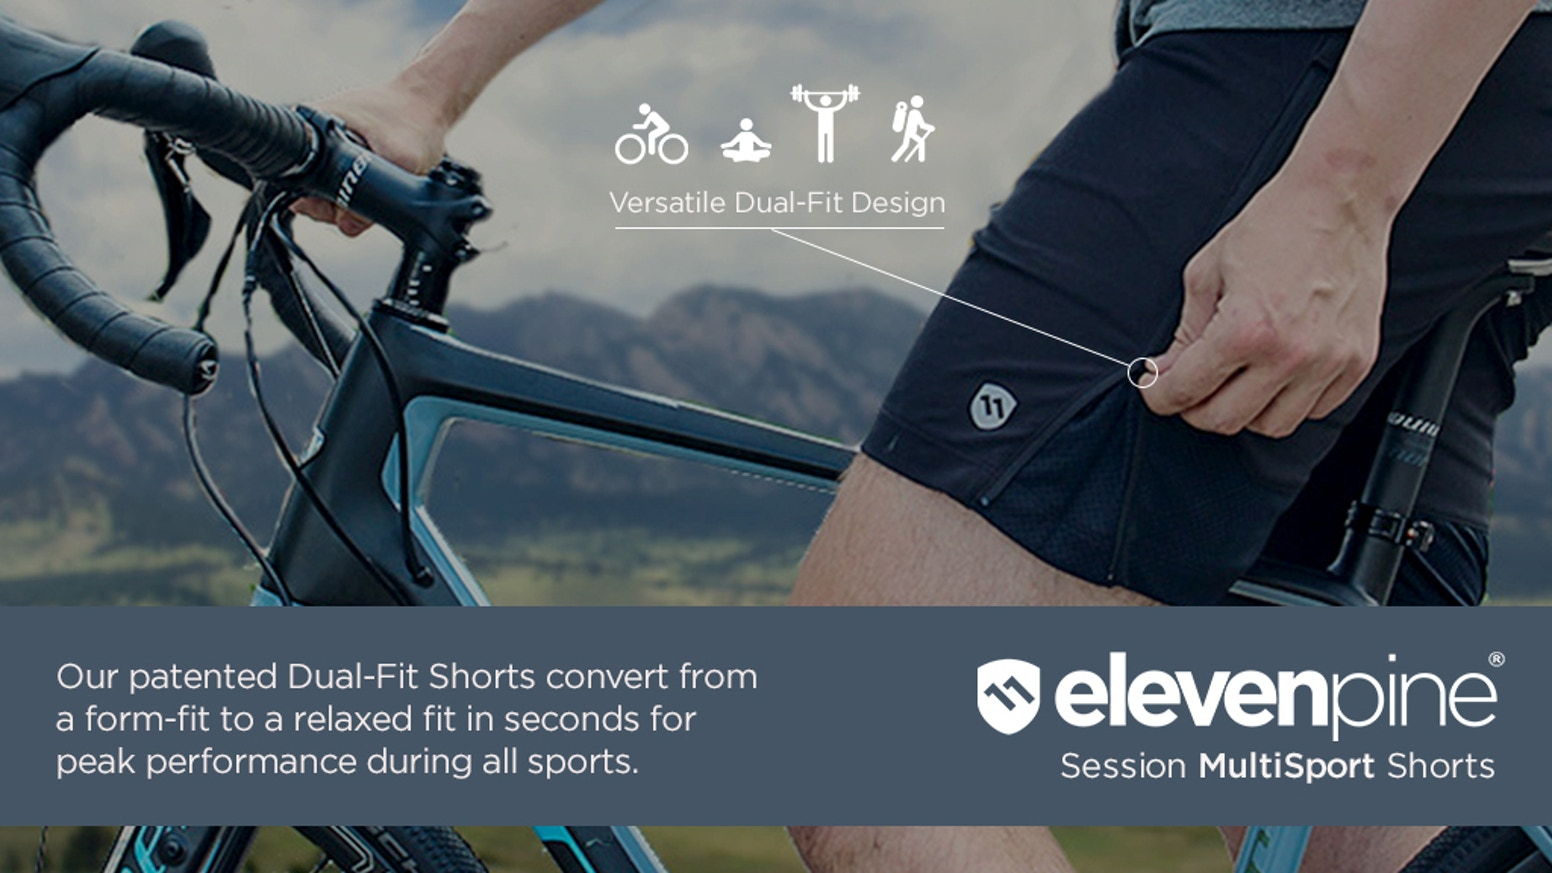 Shorts convert from form-fit to relaxed for cycling, intense workouts, outdoor activities and even daily wear!